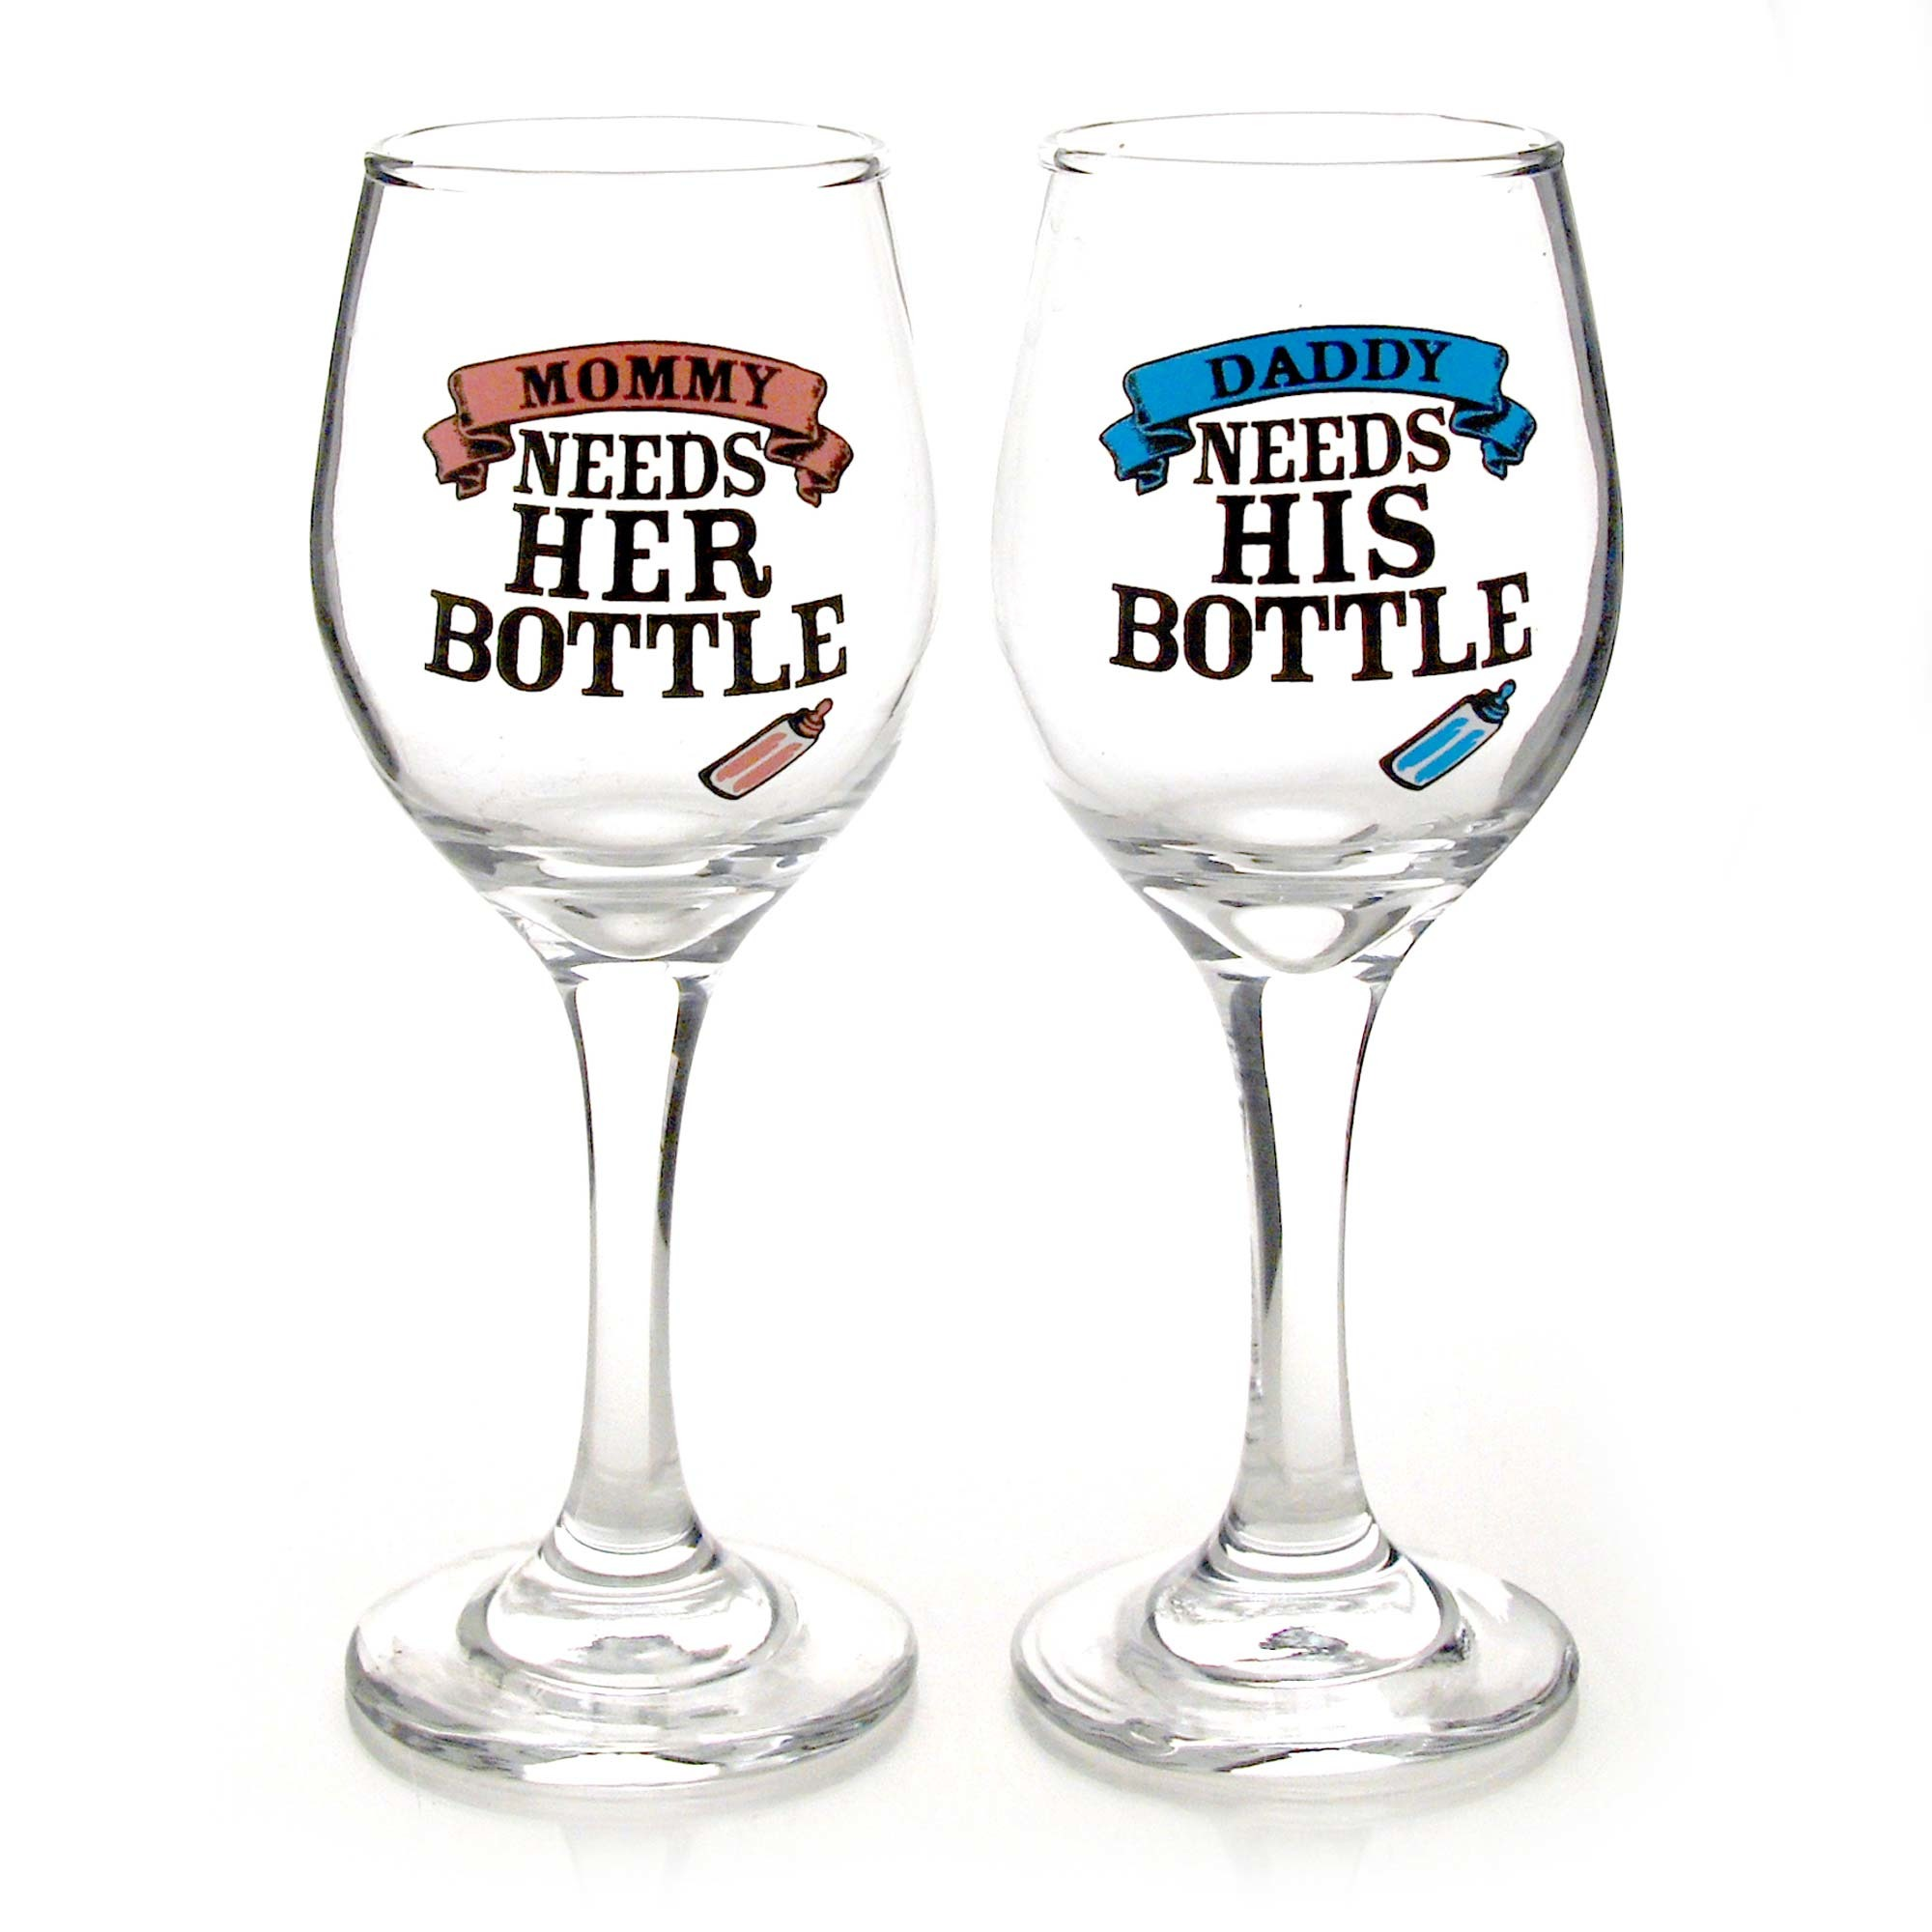 Sippy Cup Wine Glass Set - Its Time For Daddys Bottle, Its time For Mommys Bottle